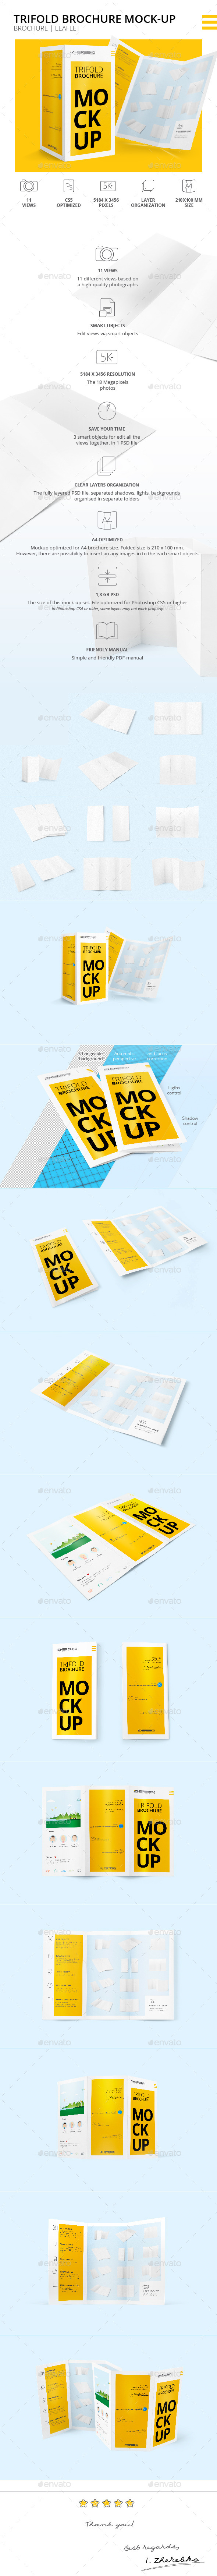 GraphicRiver Trifold Brochure Mock-Up 10815628